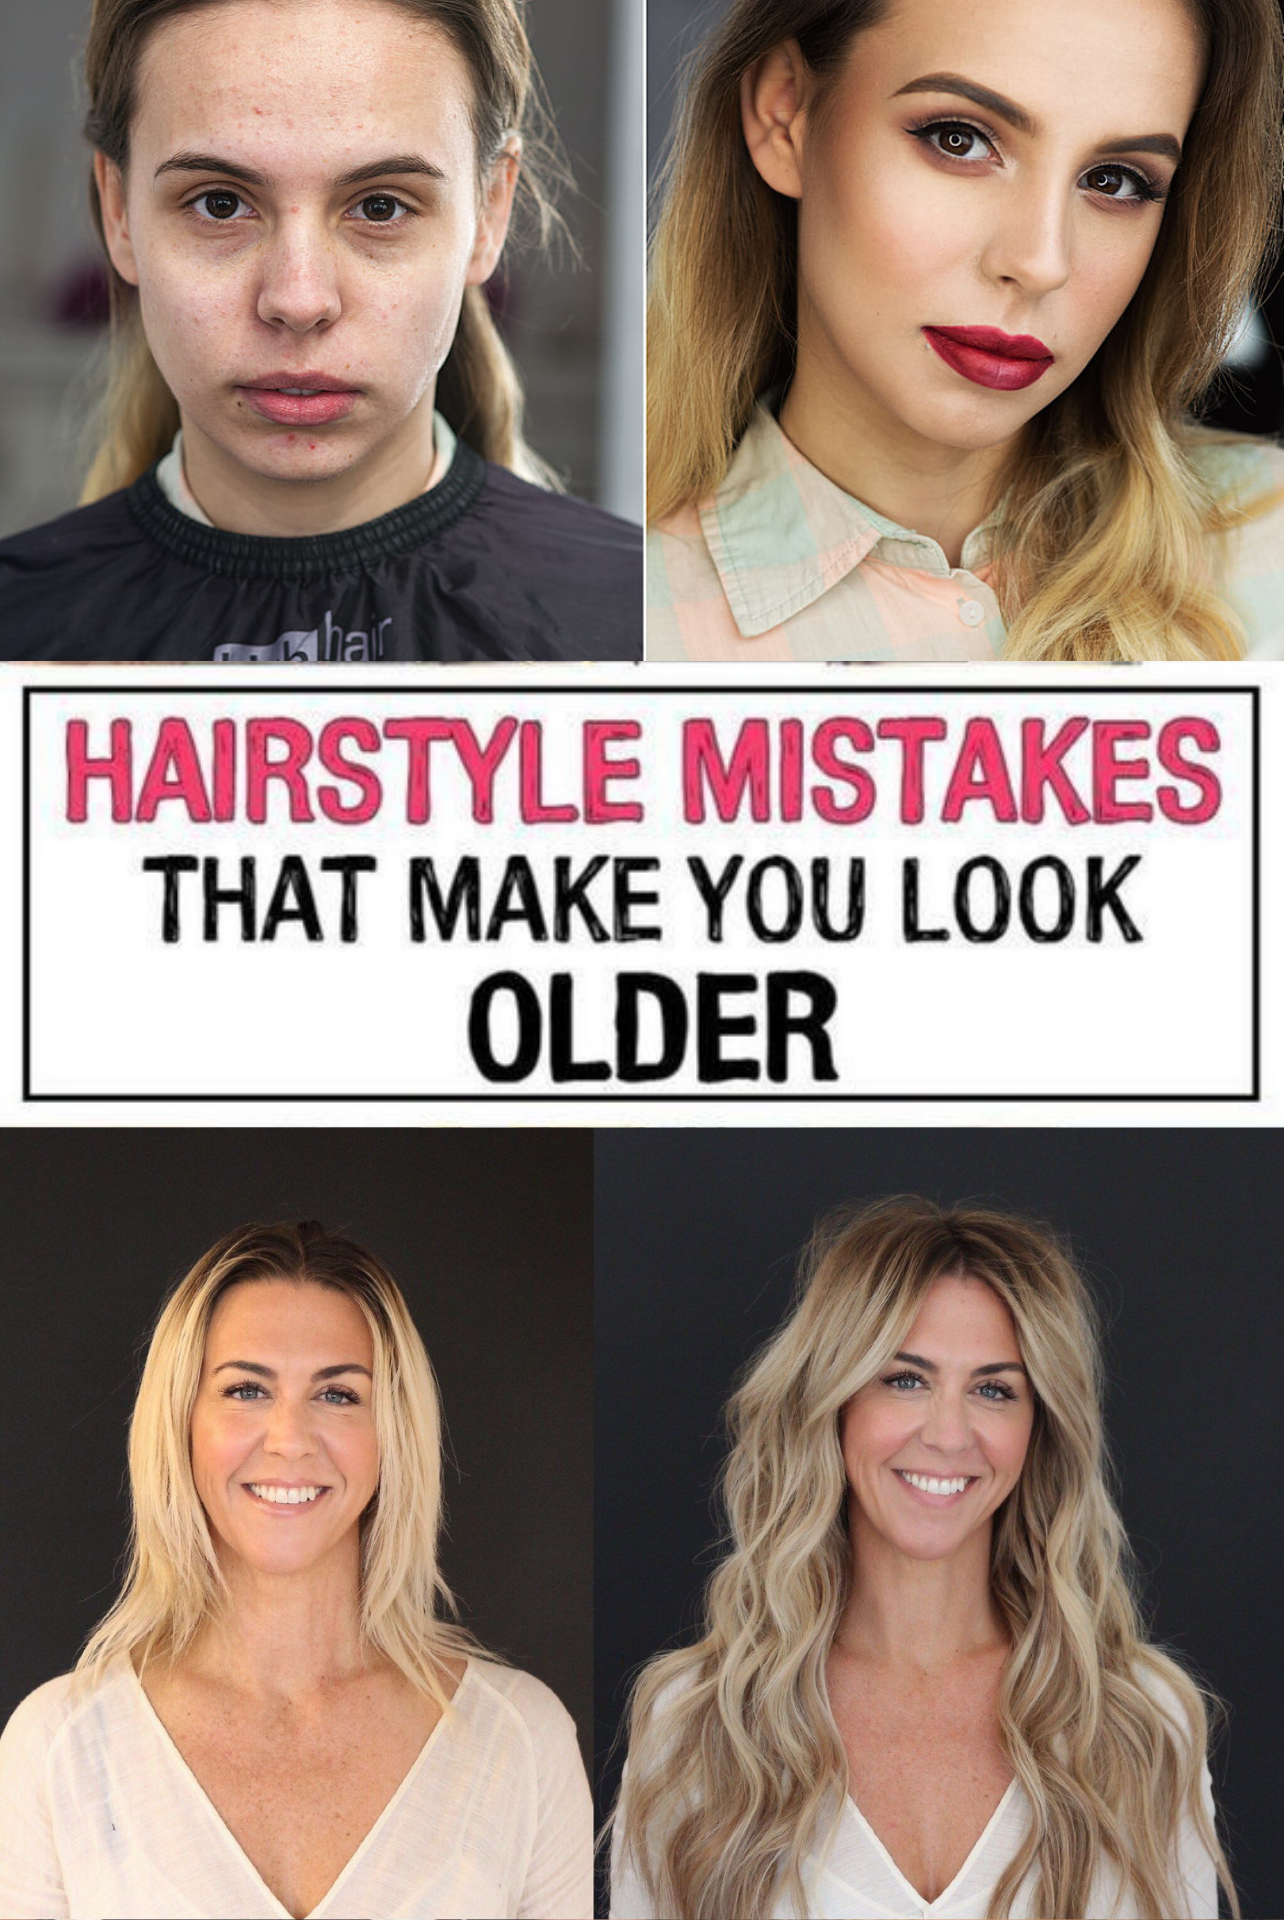 37 Hairstyle Mistakes That Are Aging You In 2020 Hairstyle Hair Mistakes Mom Hairstyles